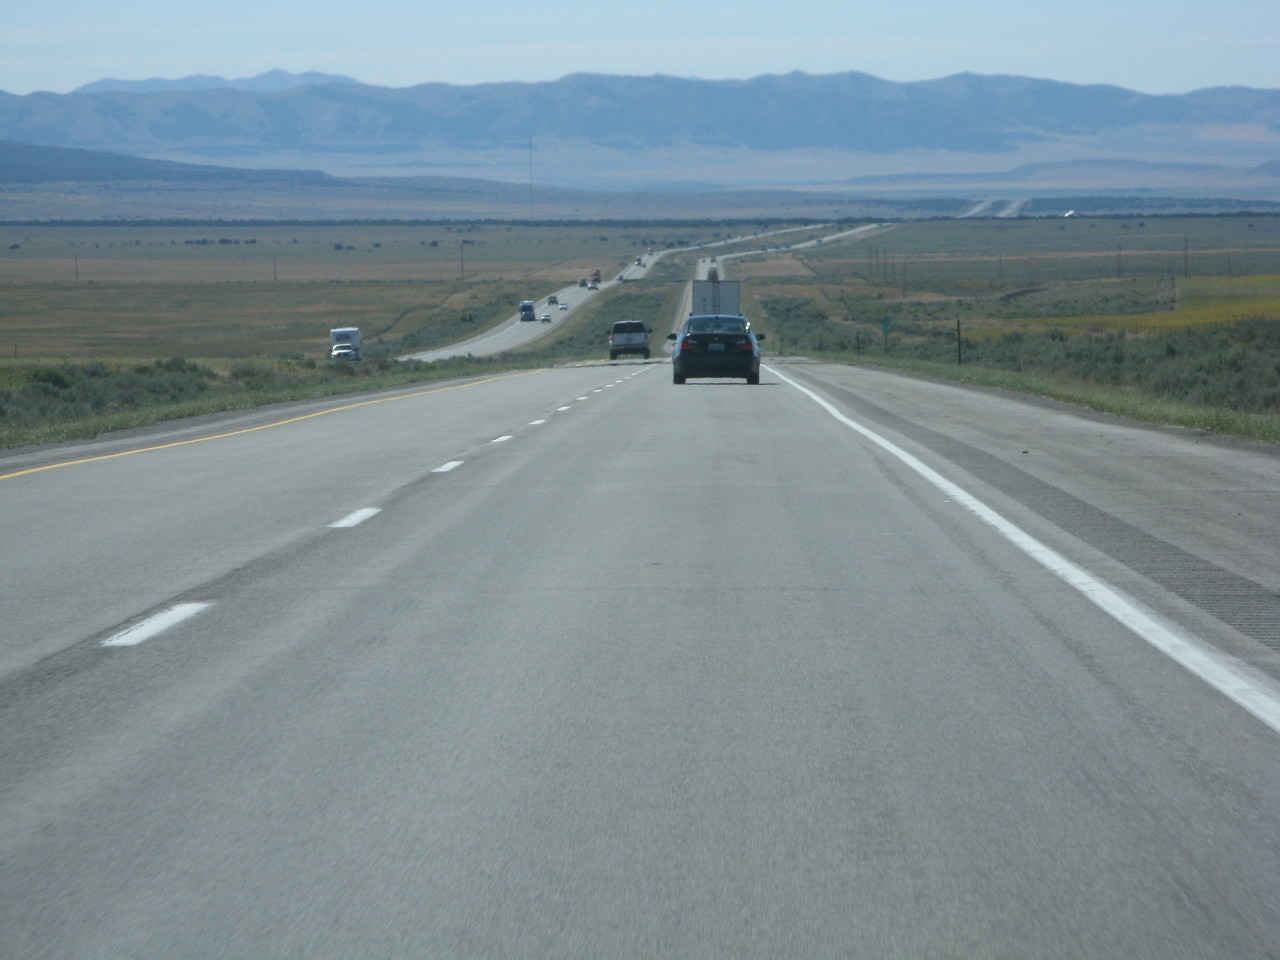 The interstate is a ribbon of highway stretching into the distance on I-84 in southern Idaho.  The speed limit is 75 mile per hour on the interstate highways in Idaho, Utah, Wyoming and Colorado.